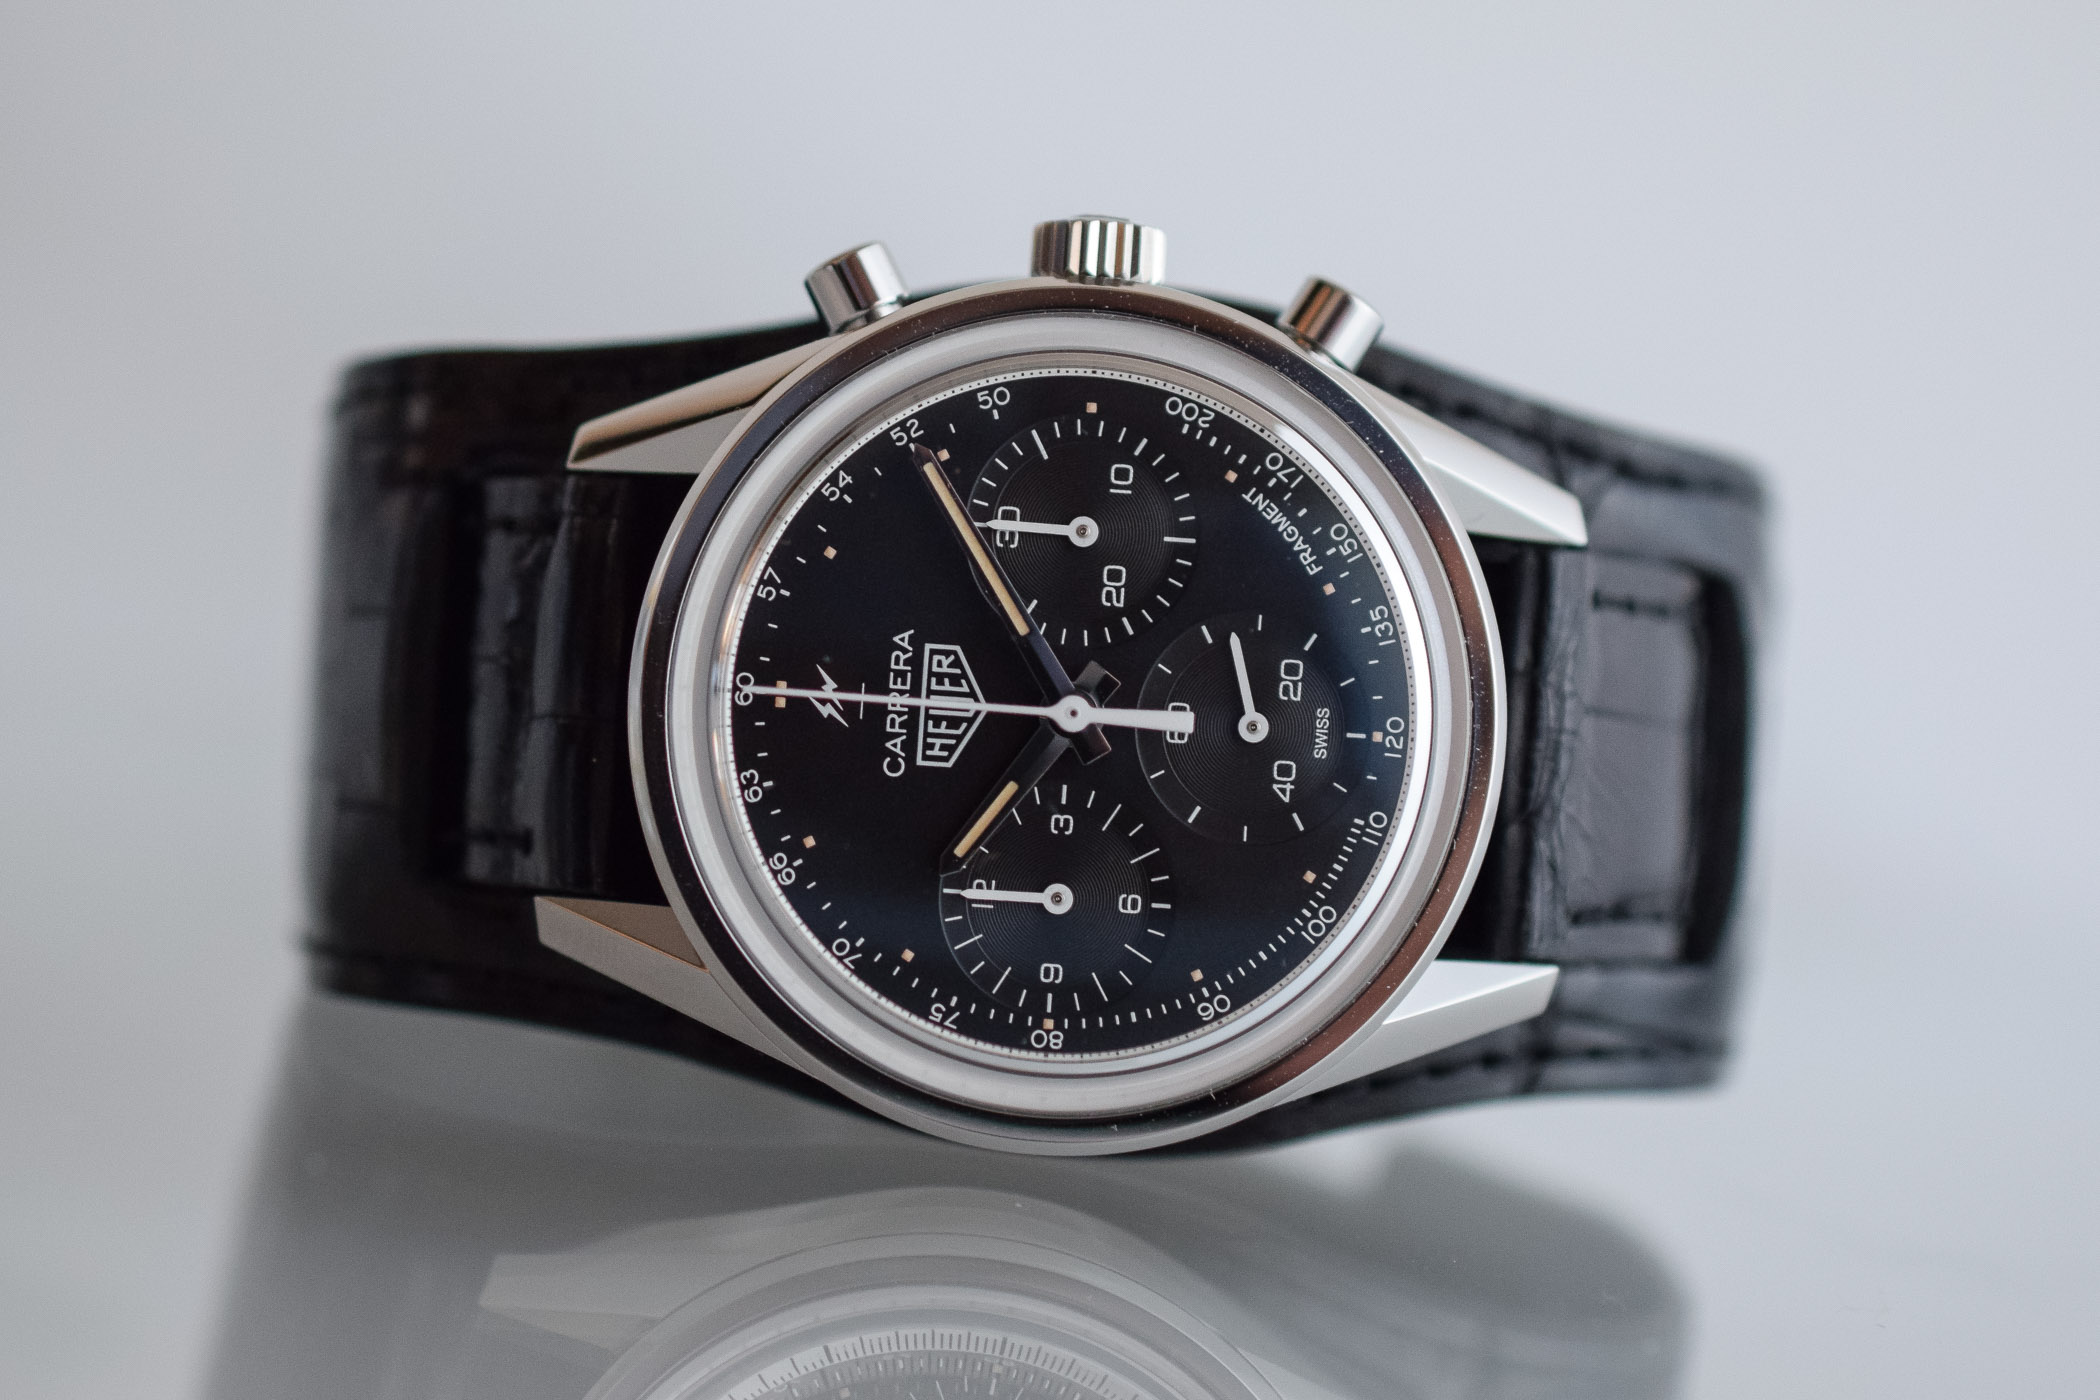 Retro-Style Fake Watches Online